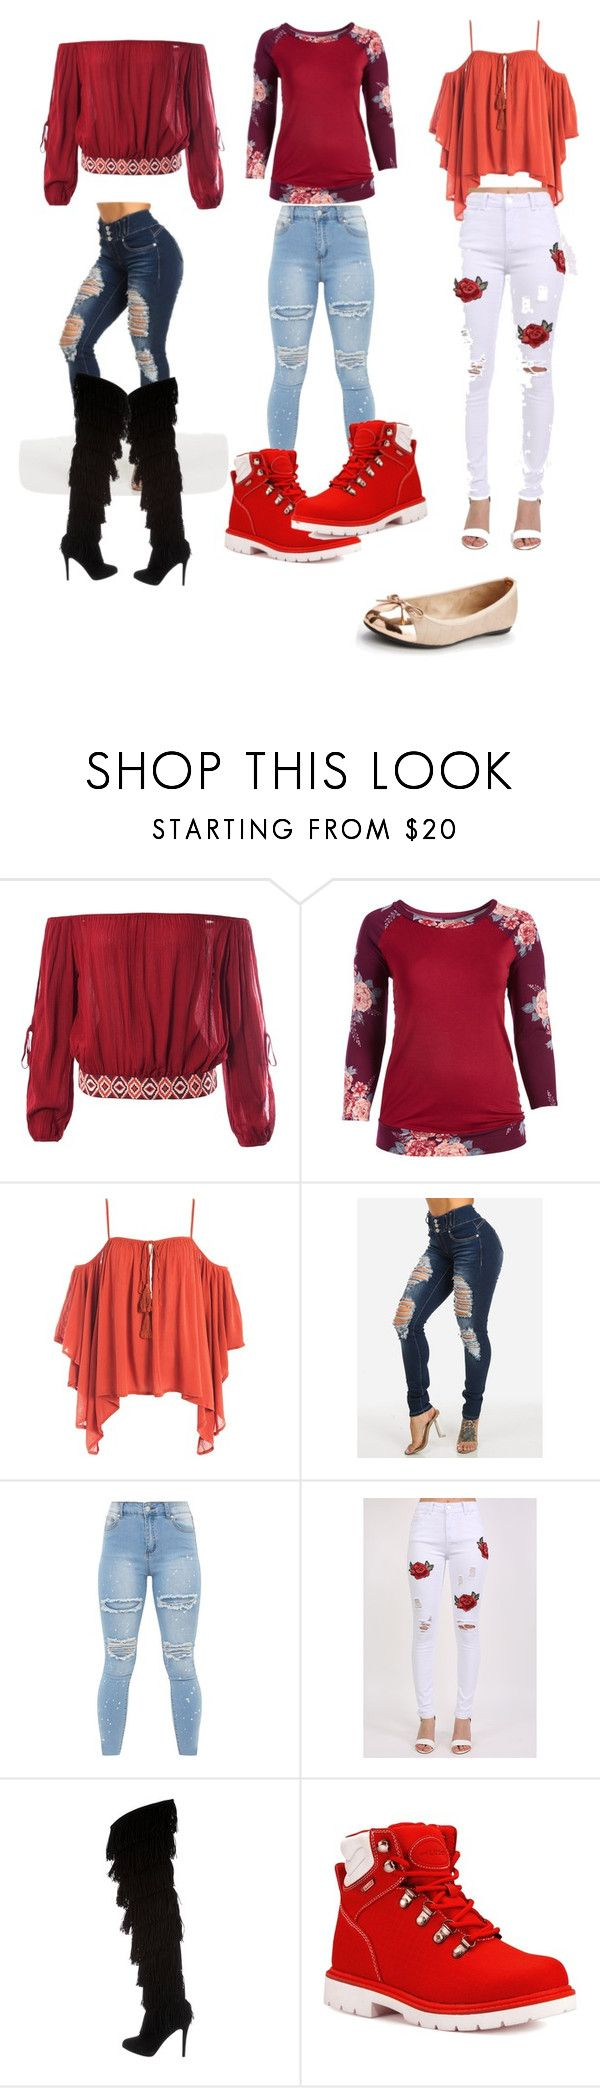 """""""Fall outfits """" by jada-boyles on Polyvore featuring Sans Souci, Evelie, Pilot, Christian Louboutin, Lugz, Butterfly Twists and plus size clothing"""